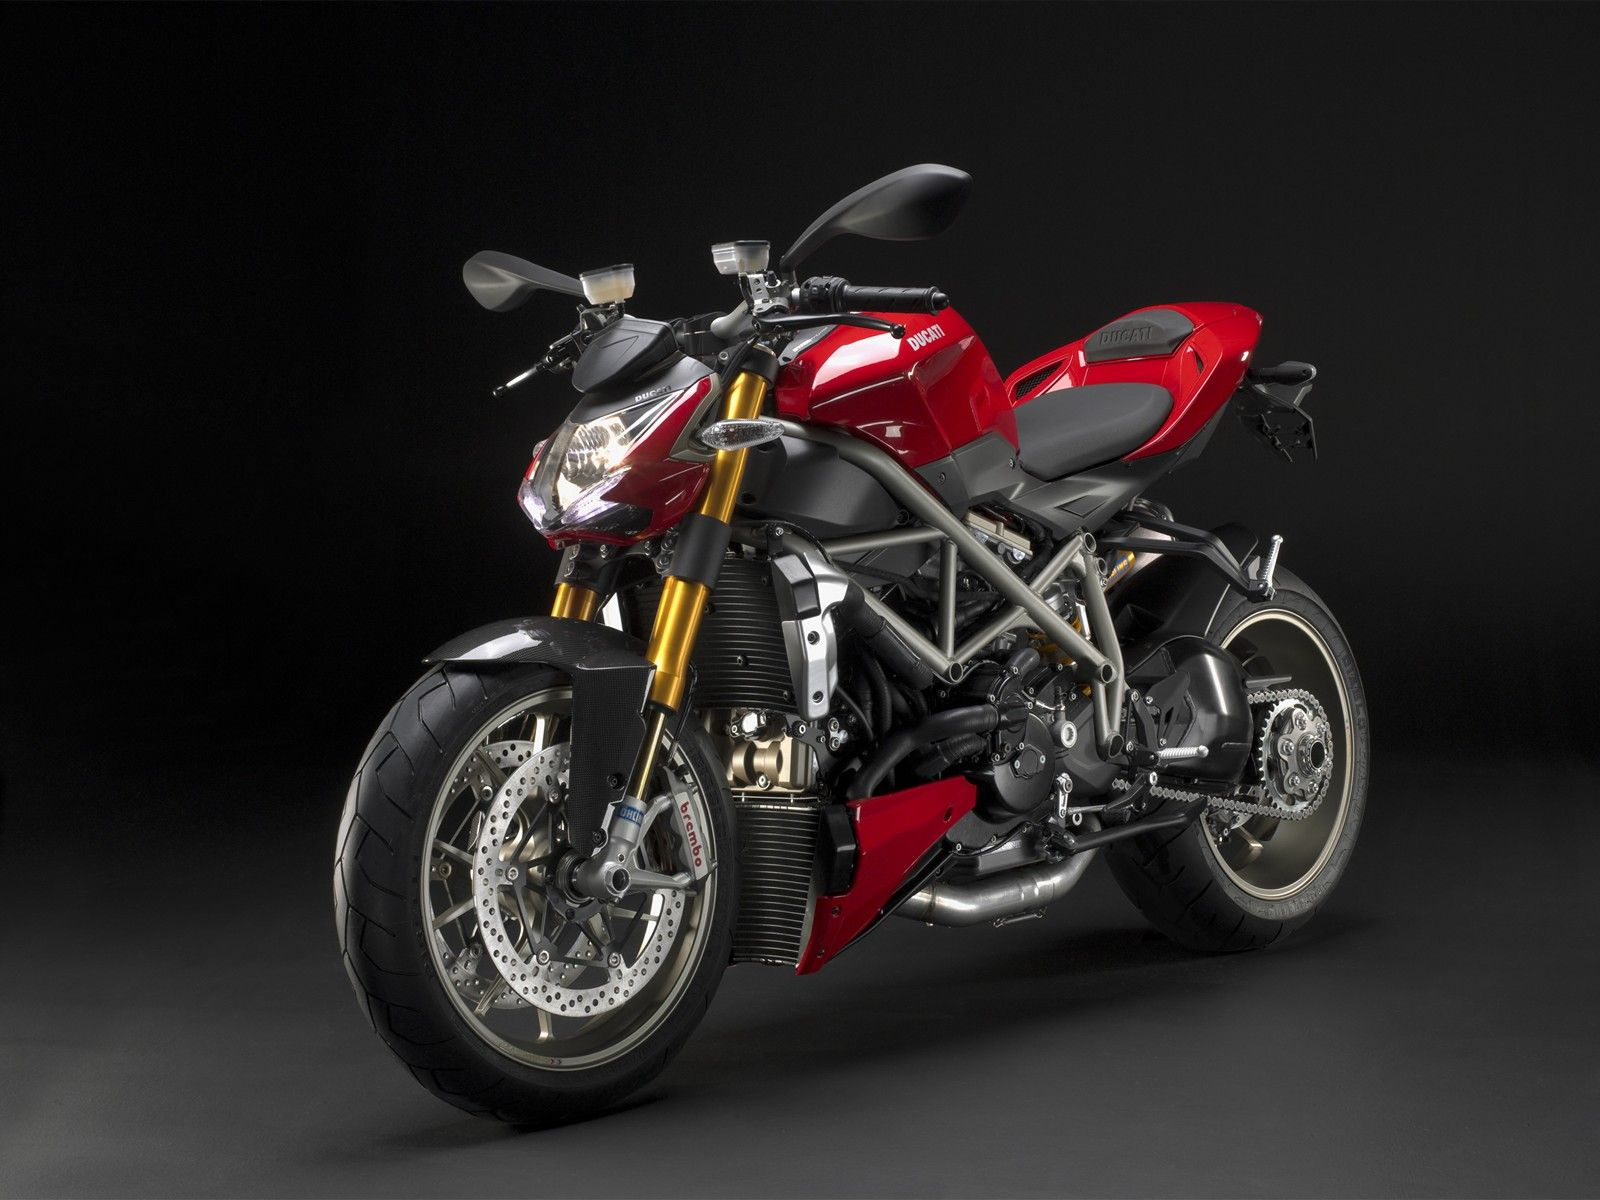 ducati streetfighter wallpaper hd - http://imashon/w/moto